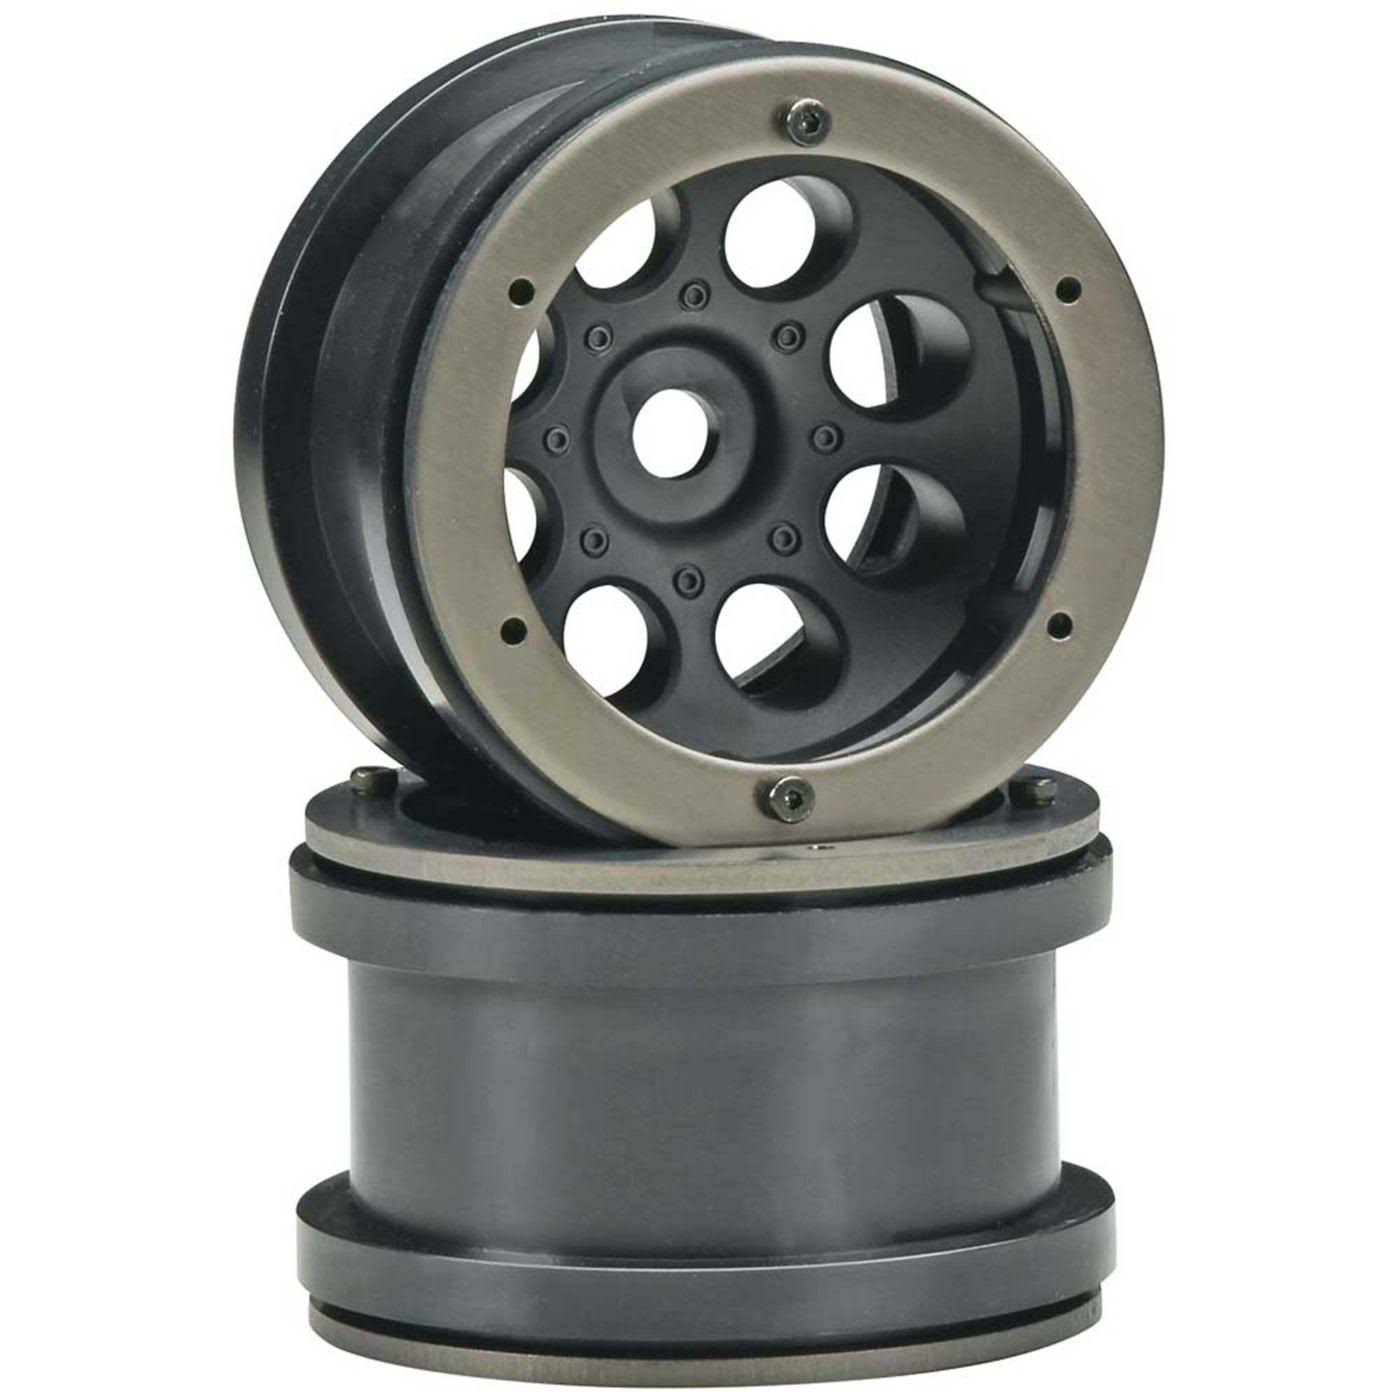 Axial AX8097 2.2 8 Hole Beadlock Scale Wheels - Black, 2pc